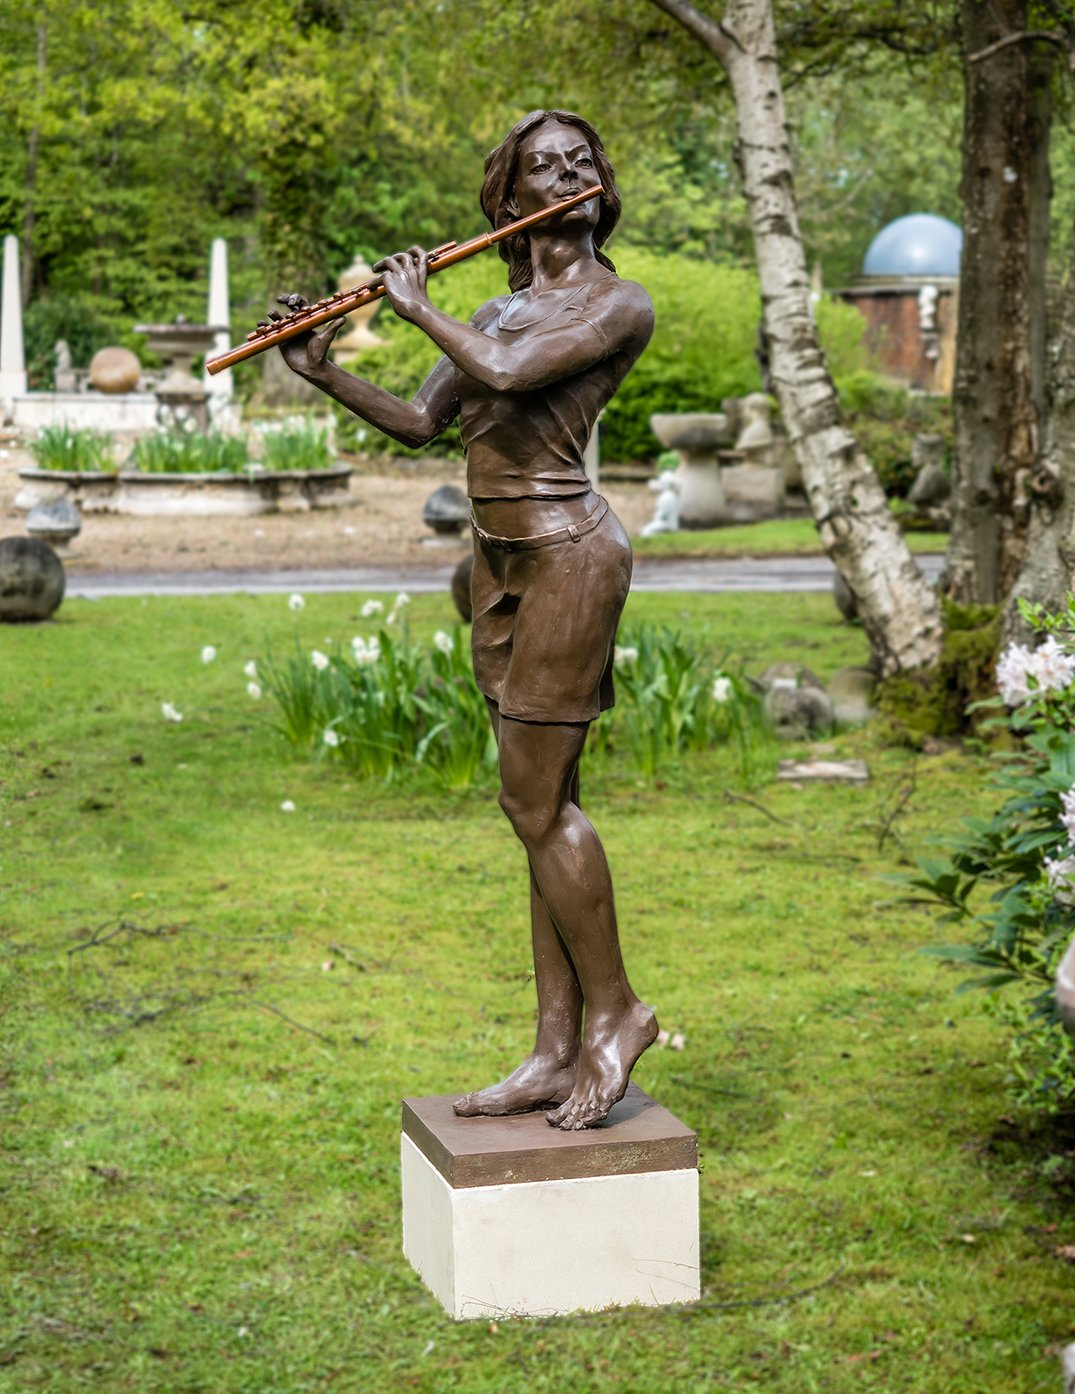 http://www.chilstone.com/garden-ornaments-category/limited-edition-music-sculpture